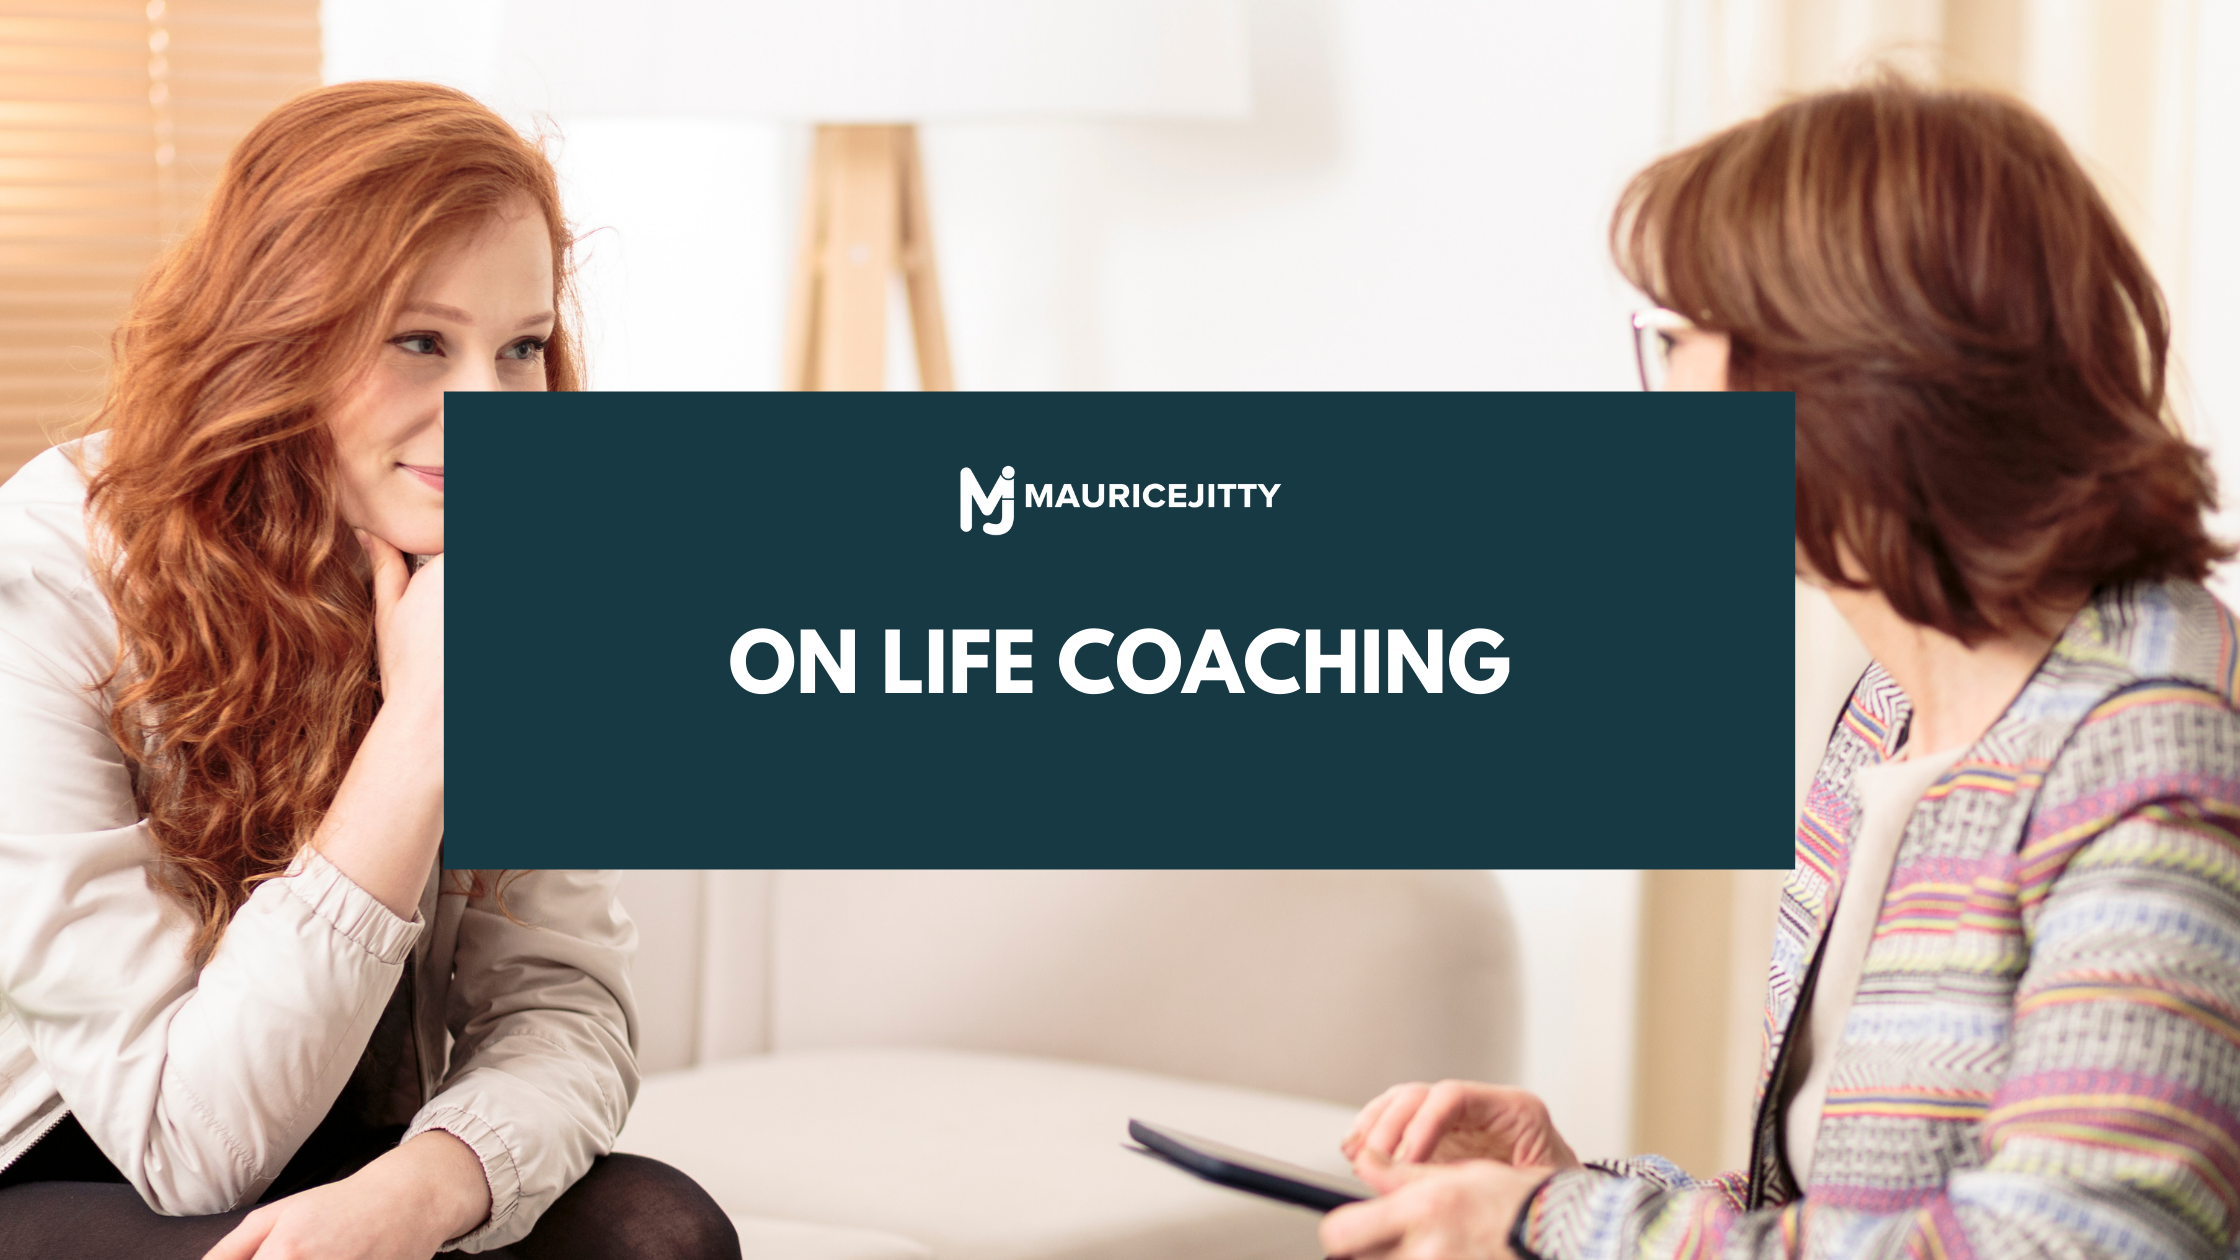 On Life Coaching